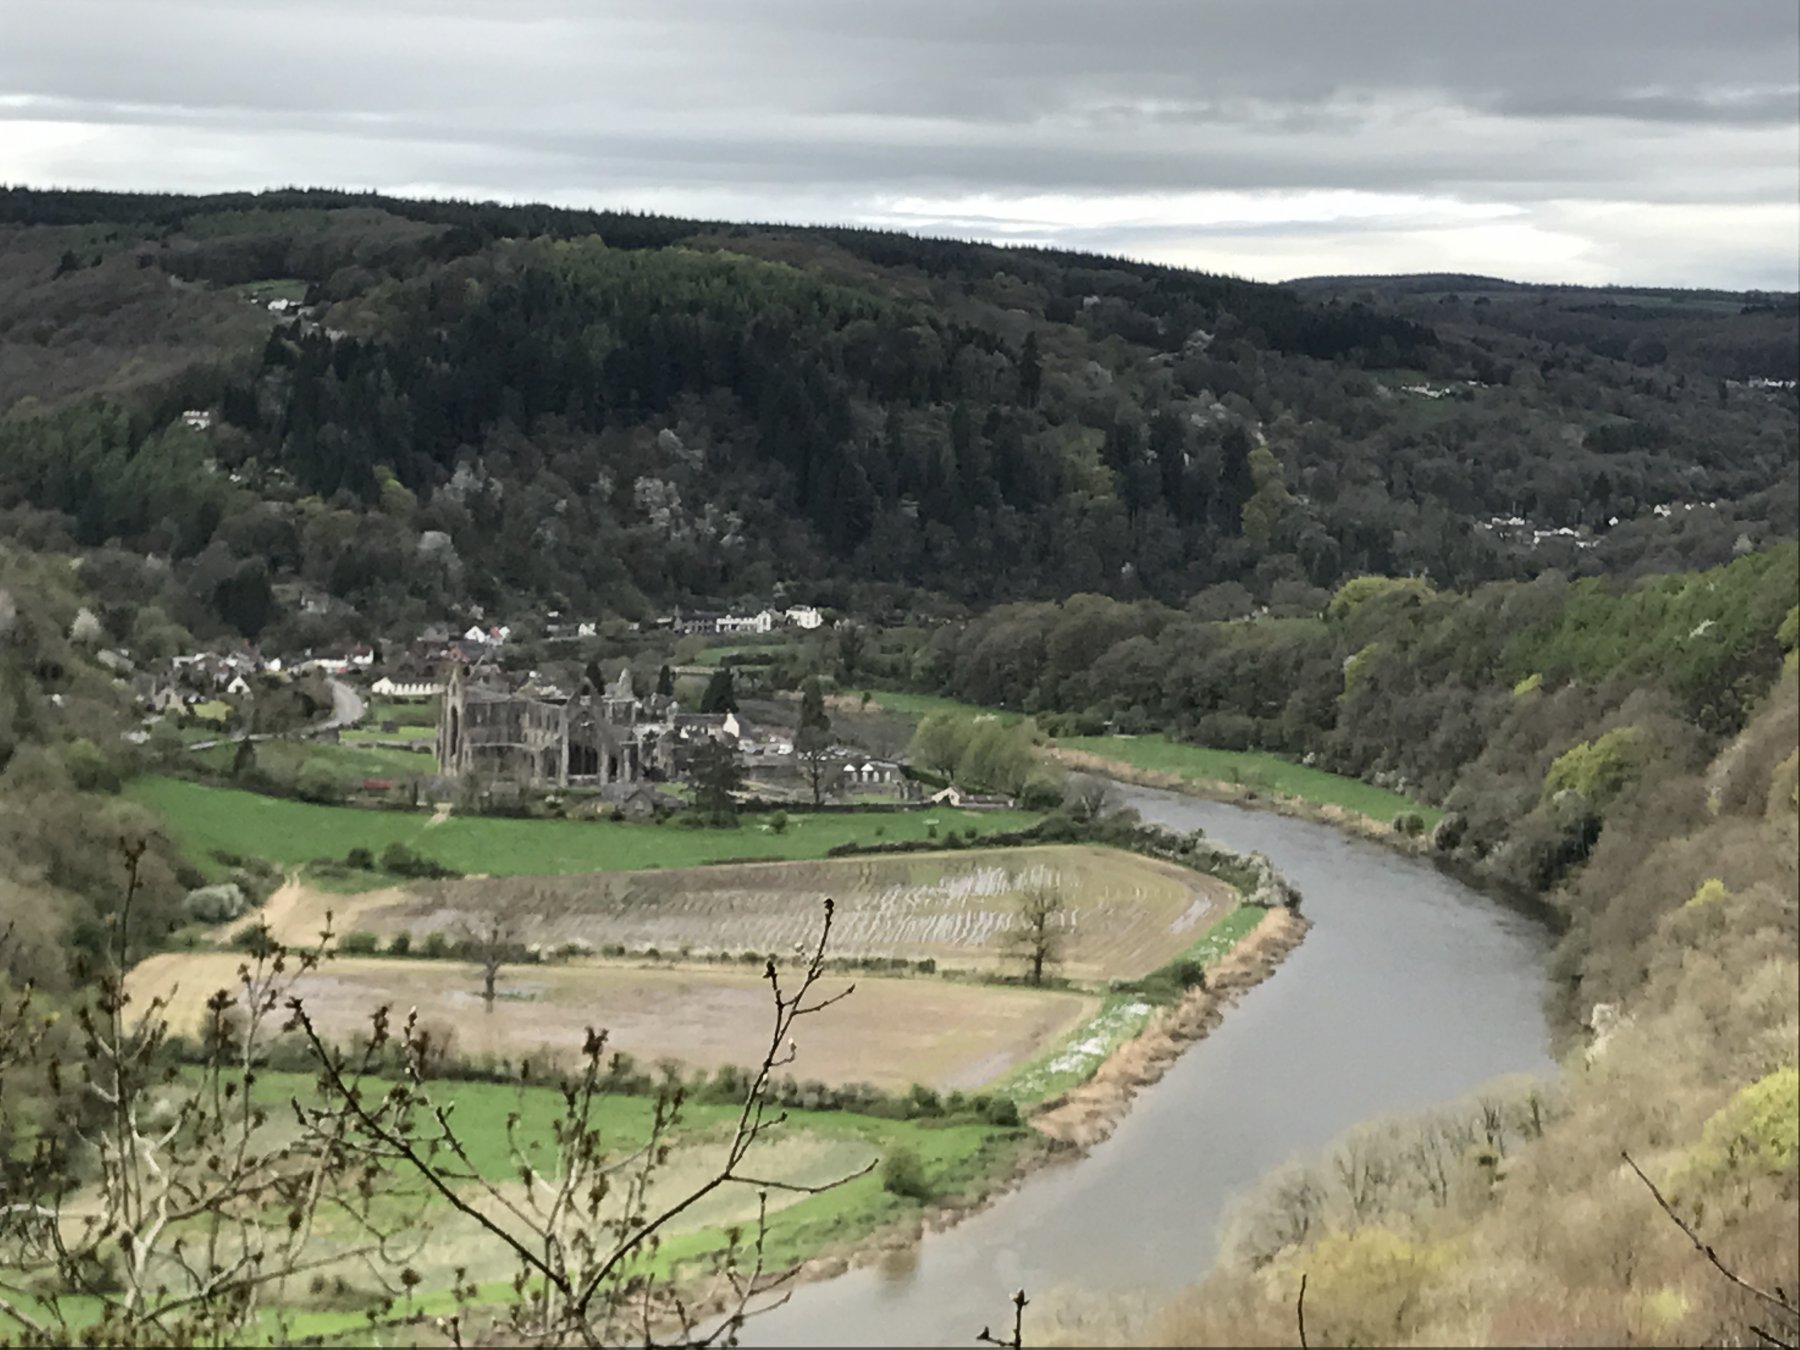 Wye Valley Shorn Cliff - Great Central Cave Area 2018-04-22